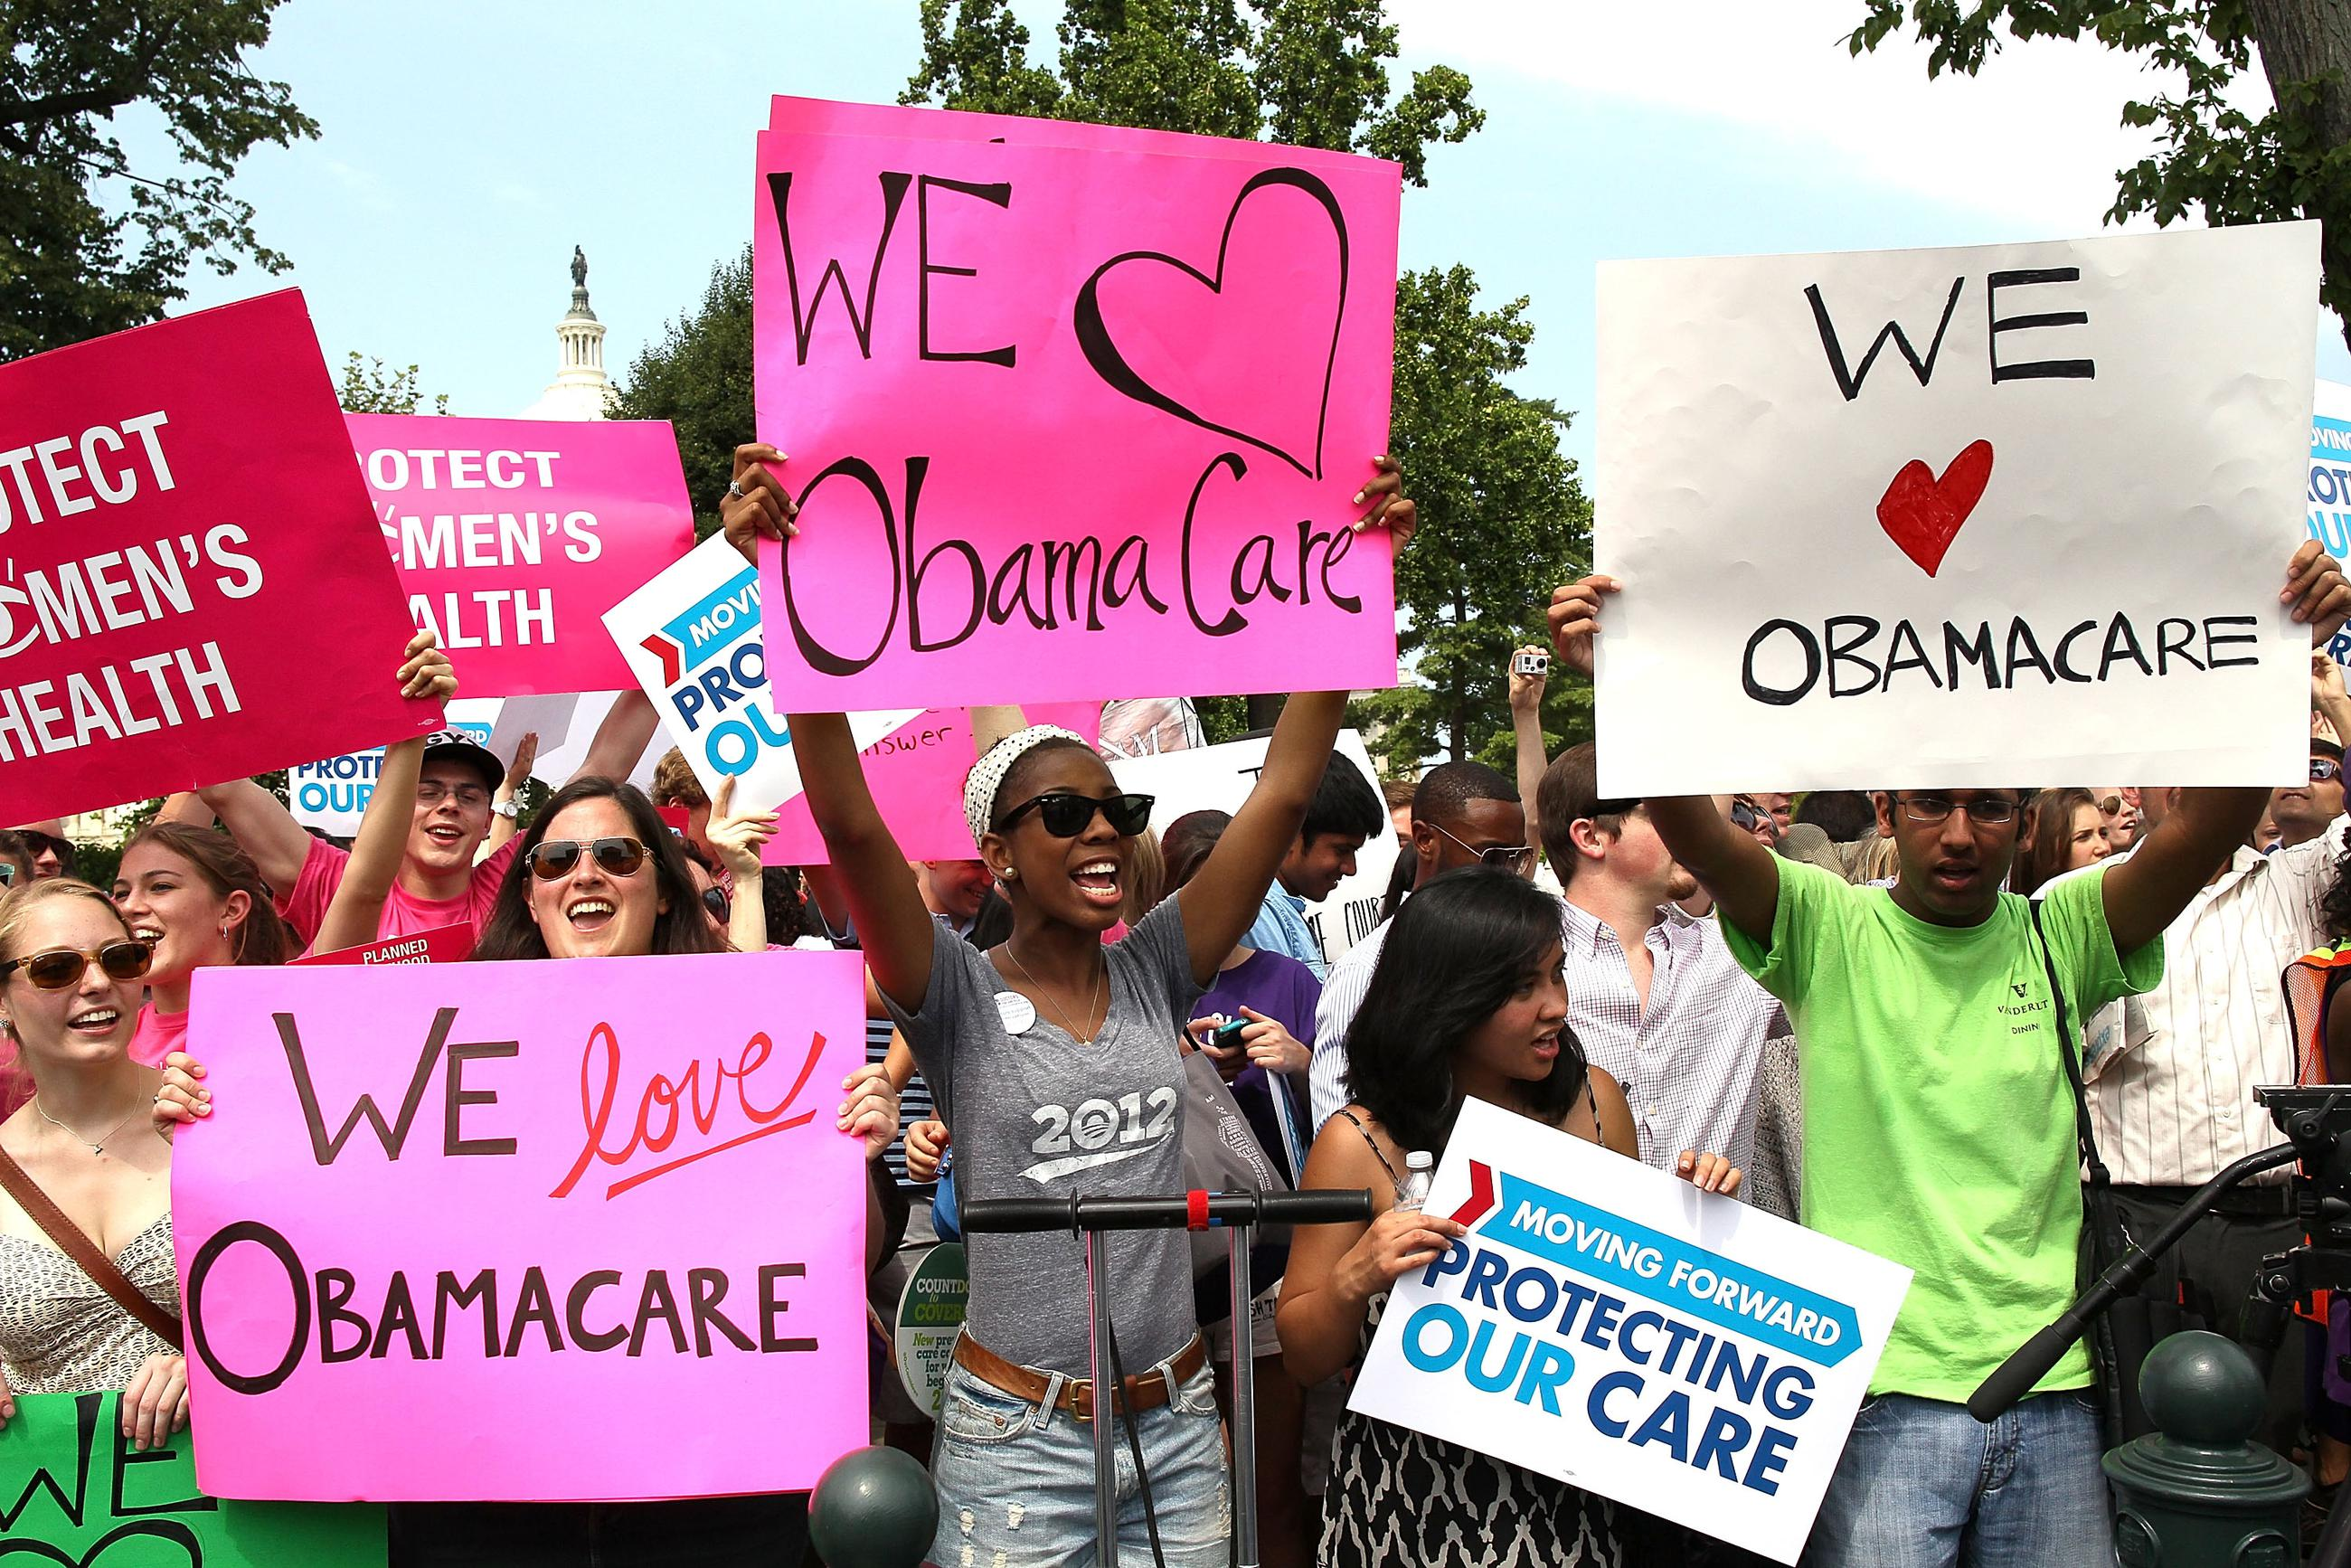 Poll: Most Americans Oppose Obamacare Repeal Despite Rollout Troubles